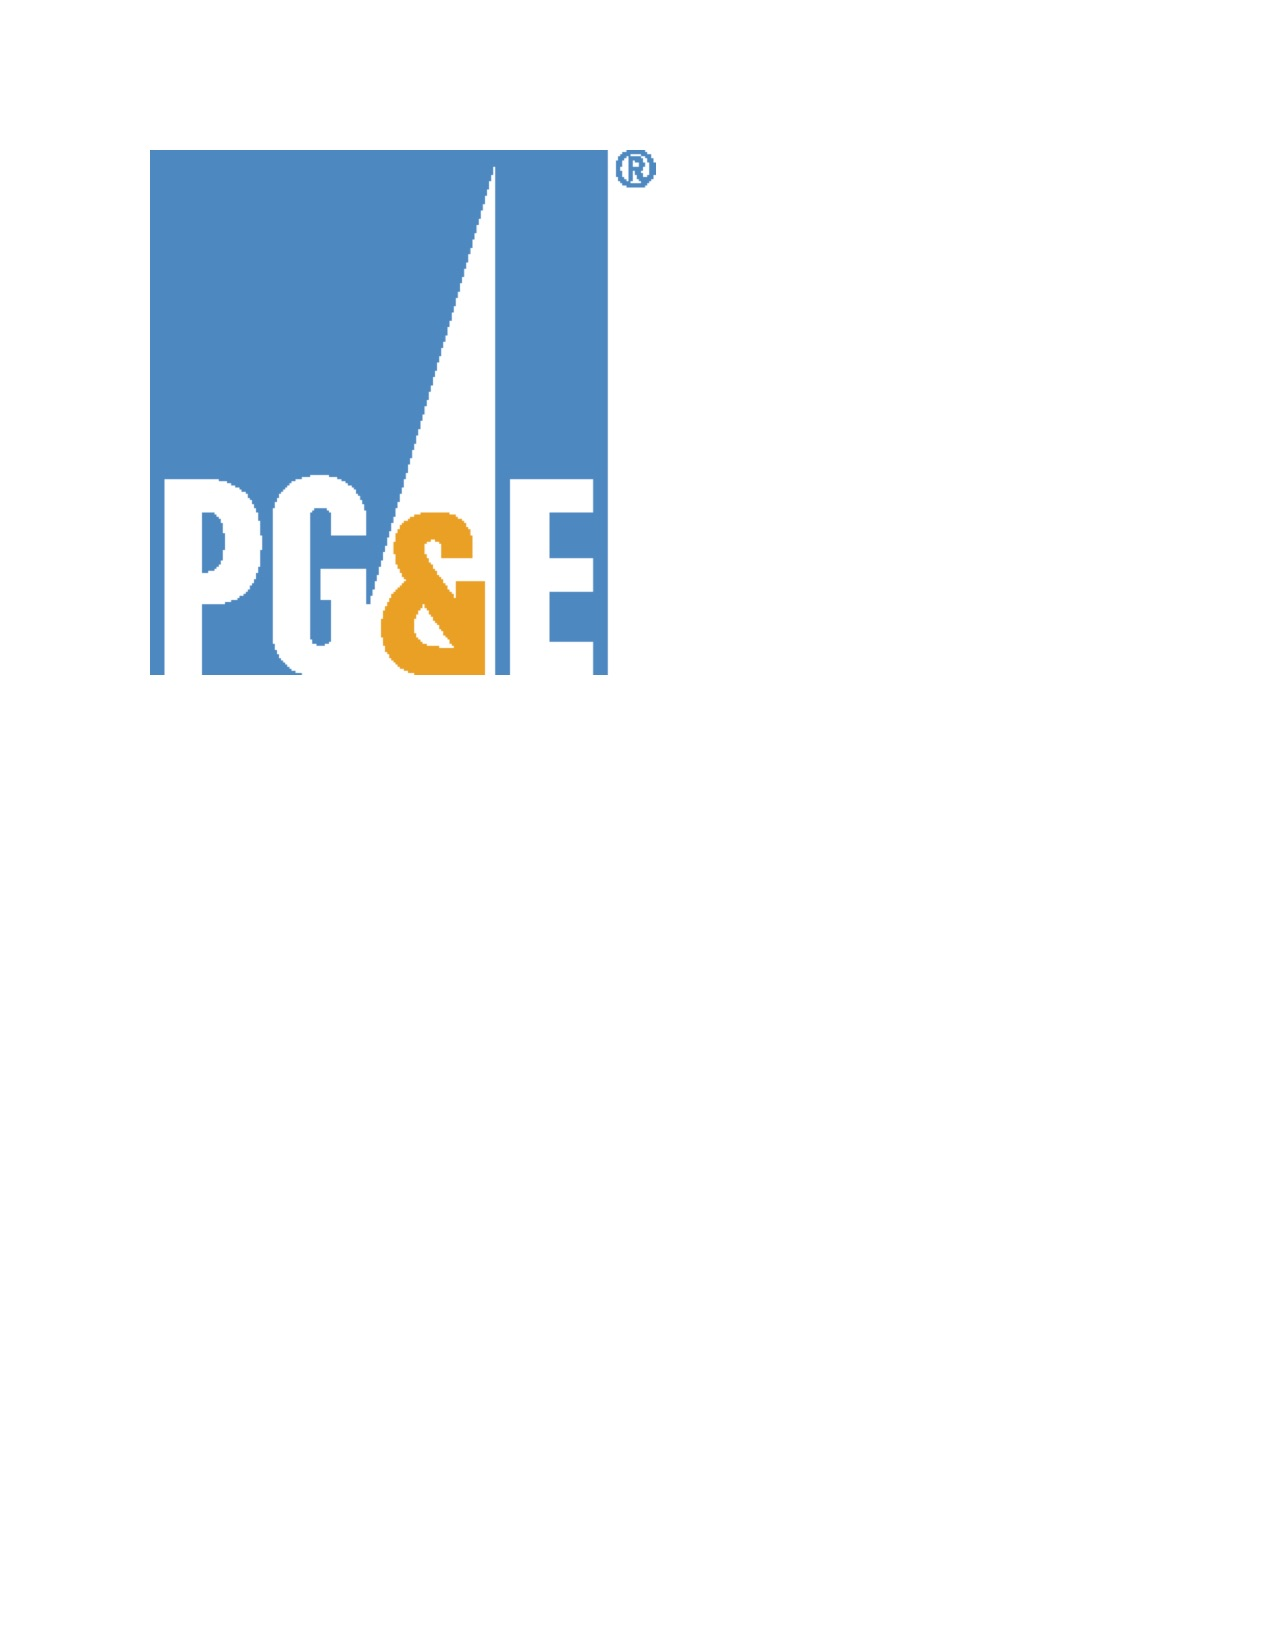 PG&E Logo - BottleRock Napa Valley PG&E Color Logo-2 | BottleRock Napa Valley